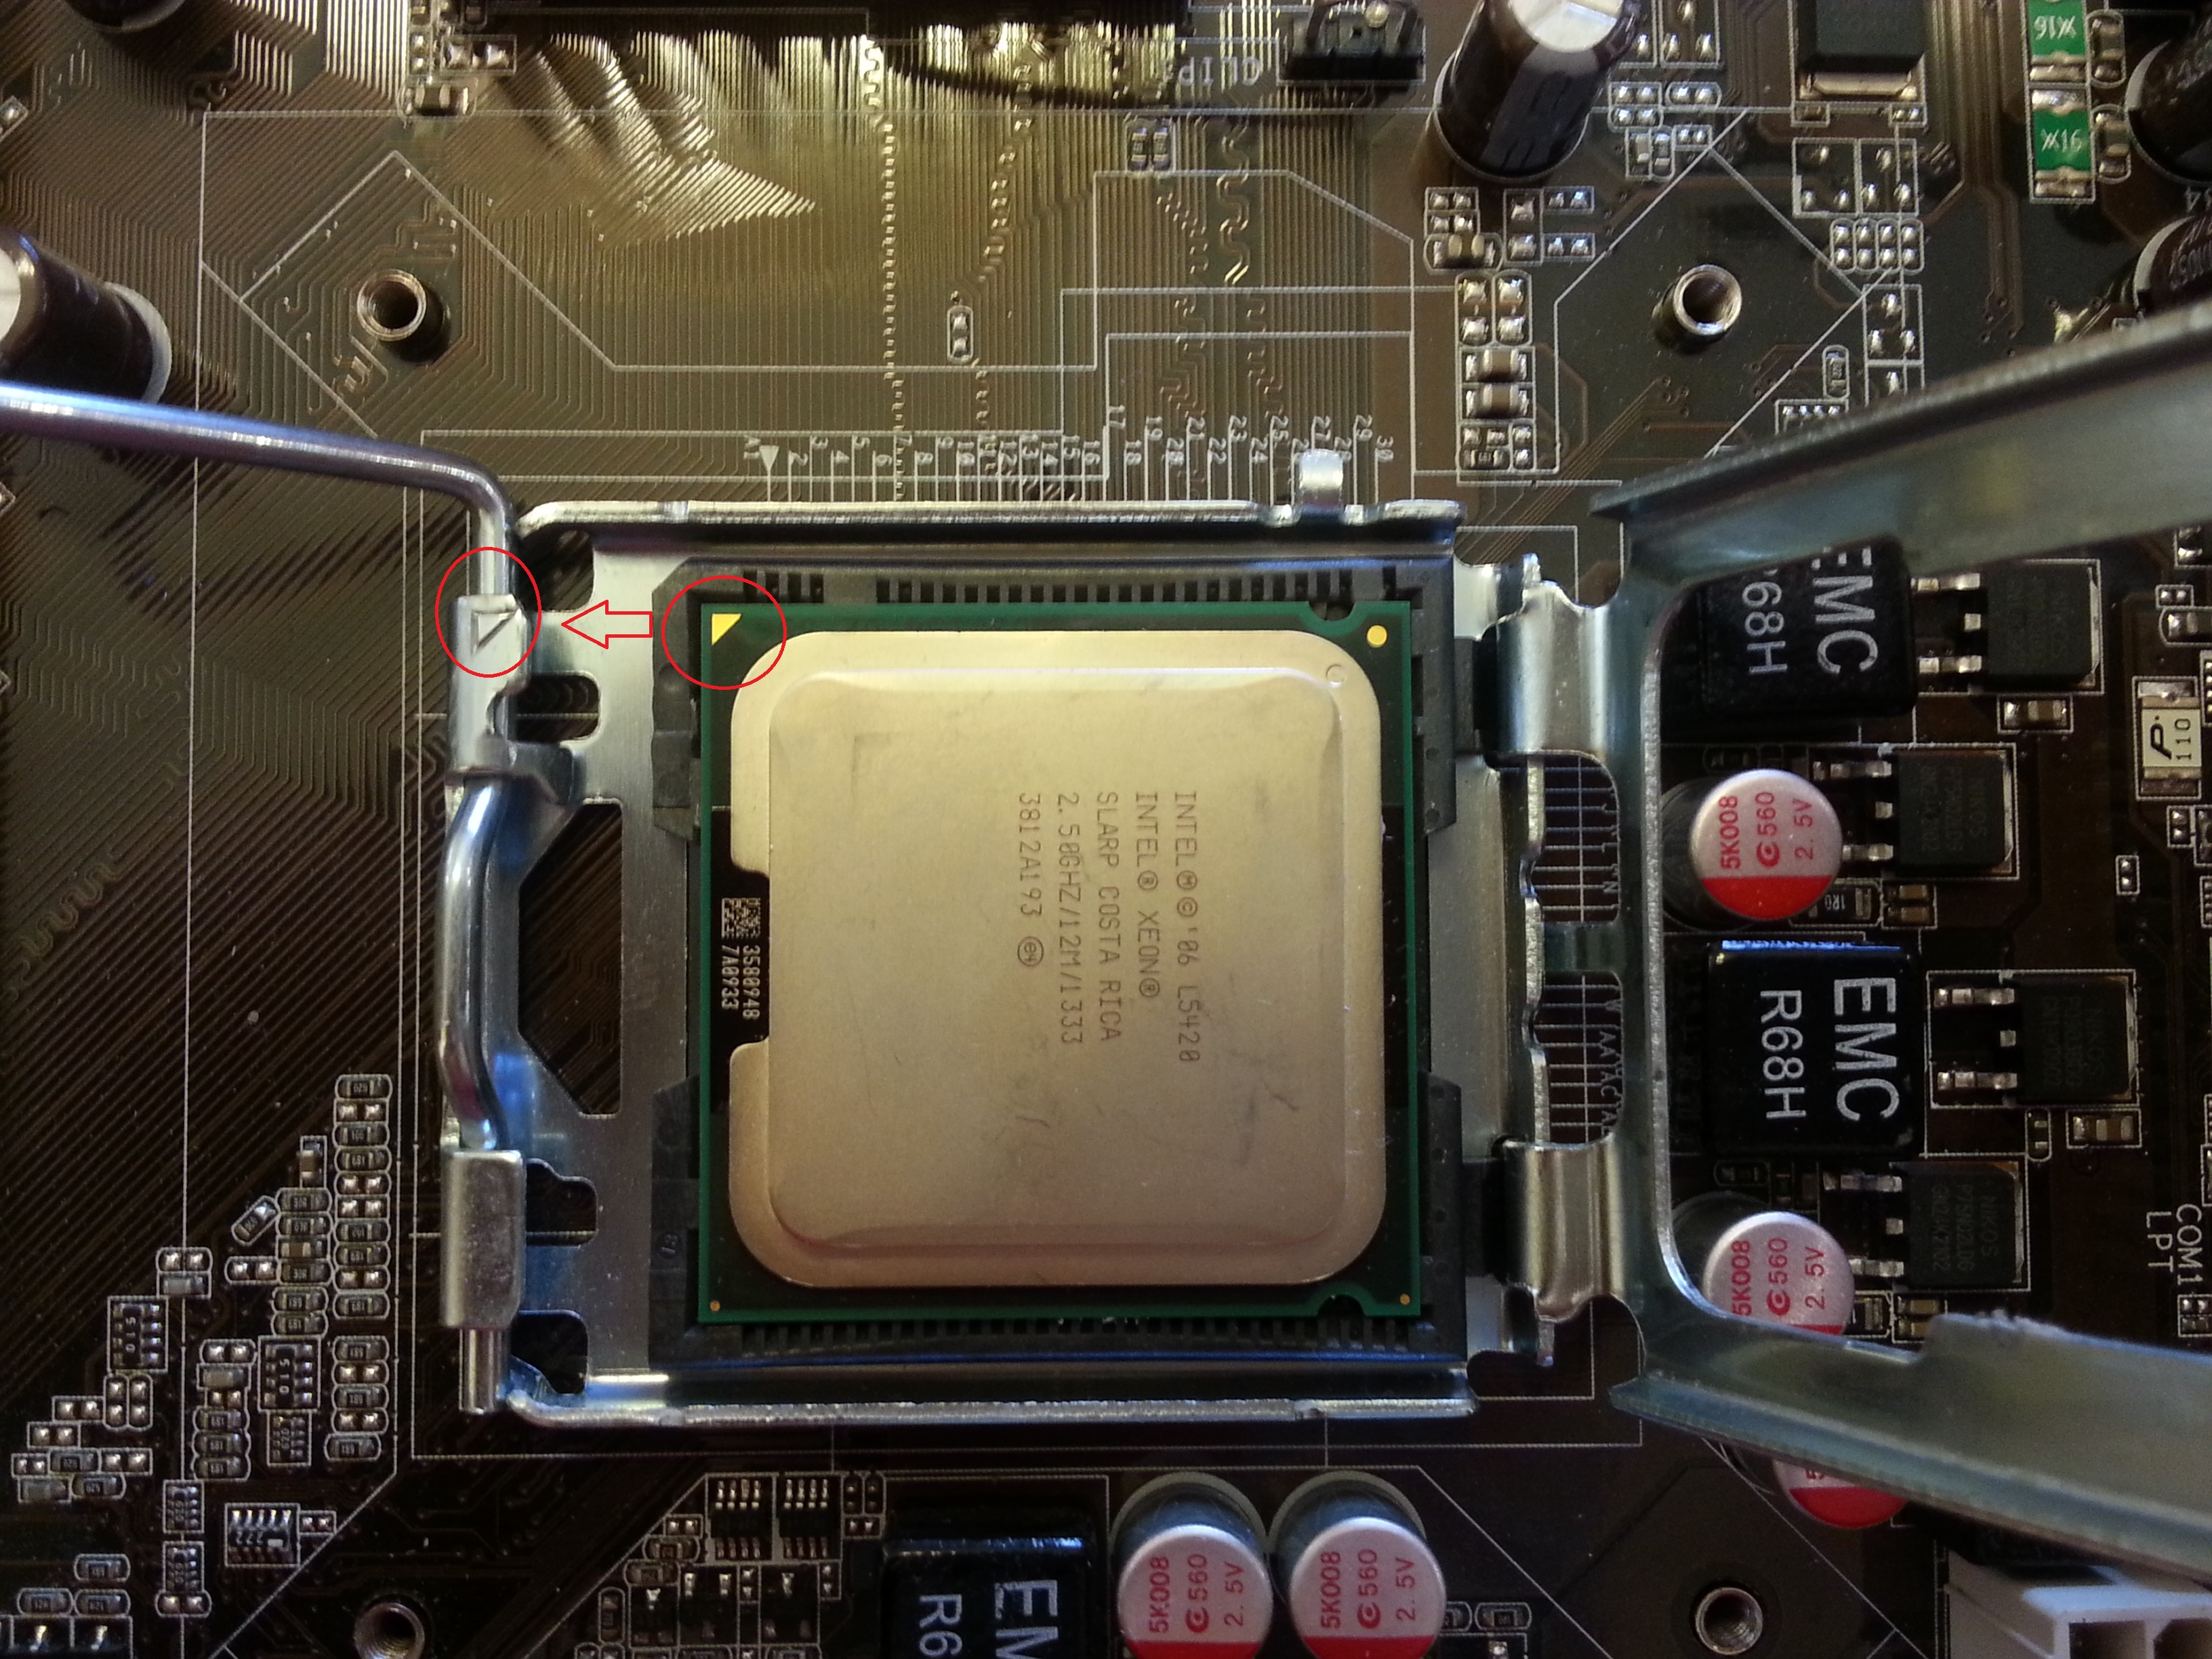 Good News For The Lga775 Now 771 Is Available To Convert 775 Motherboard Lga G31 G33 Ddr2 Put Cpu In Slot Match Up Two Trianglethe Golden Triangle On And One At Same Side As Pics Show